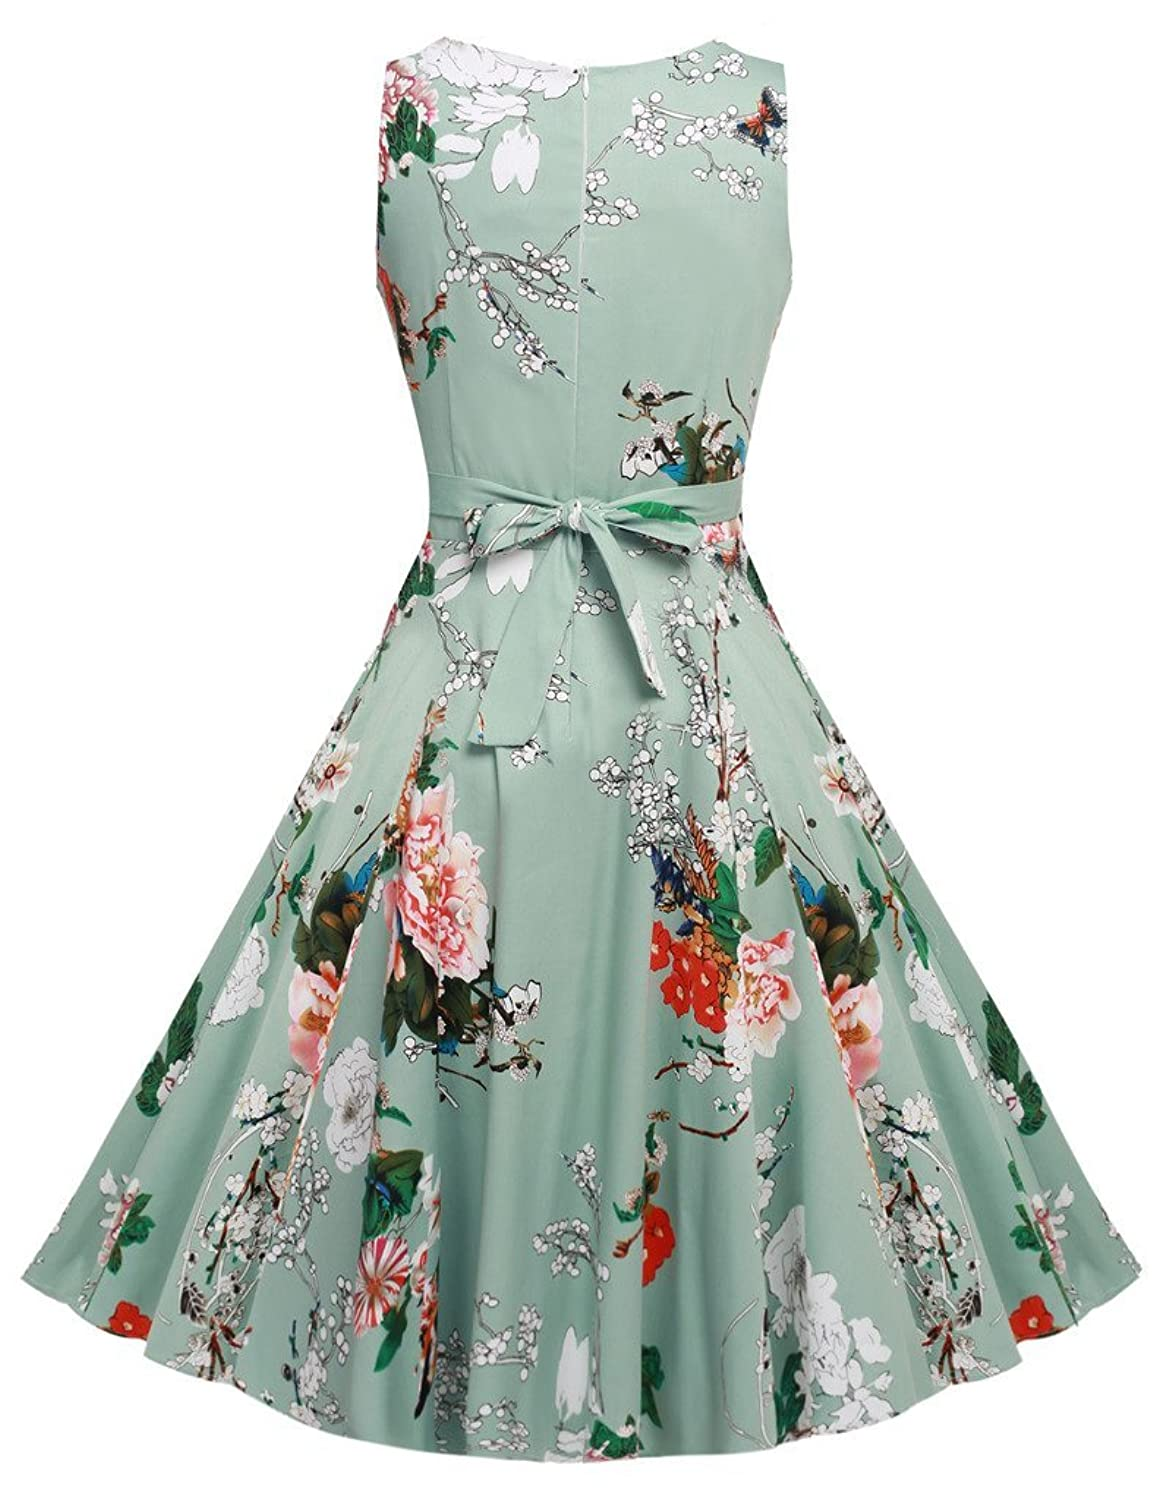 Amazon.com: ARANEE Vintage Classy Floral Sleeveless Party Picnic ...